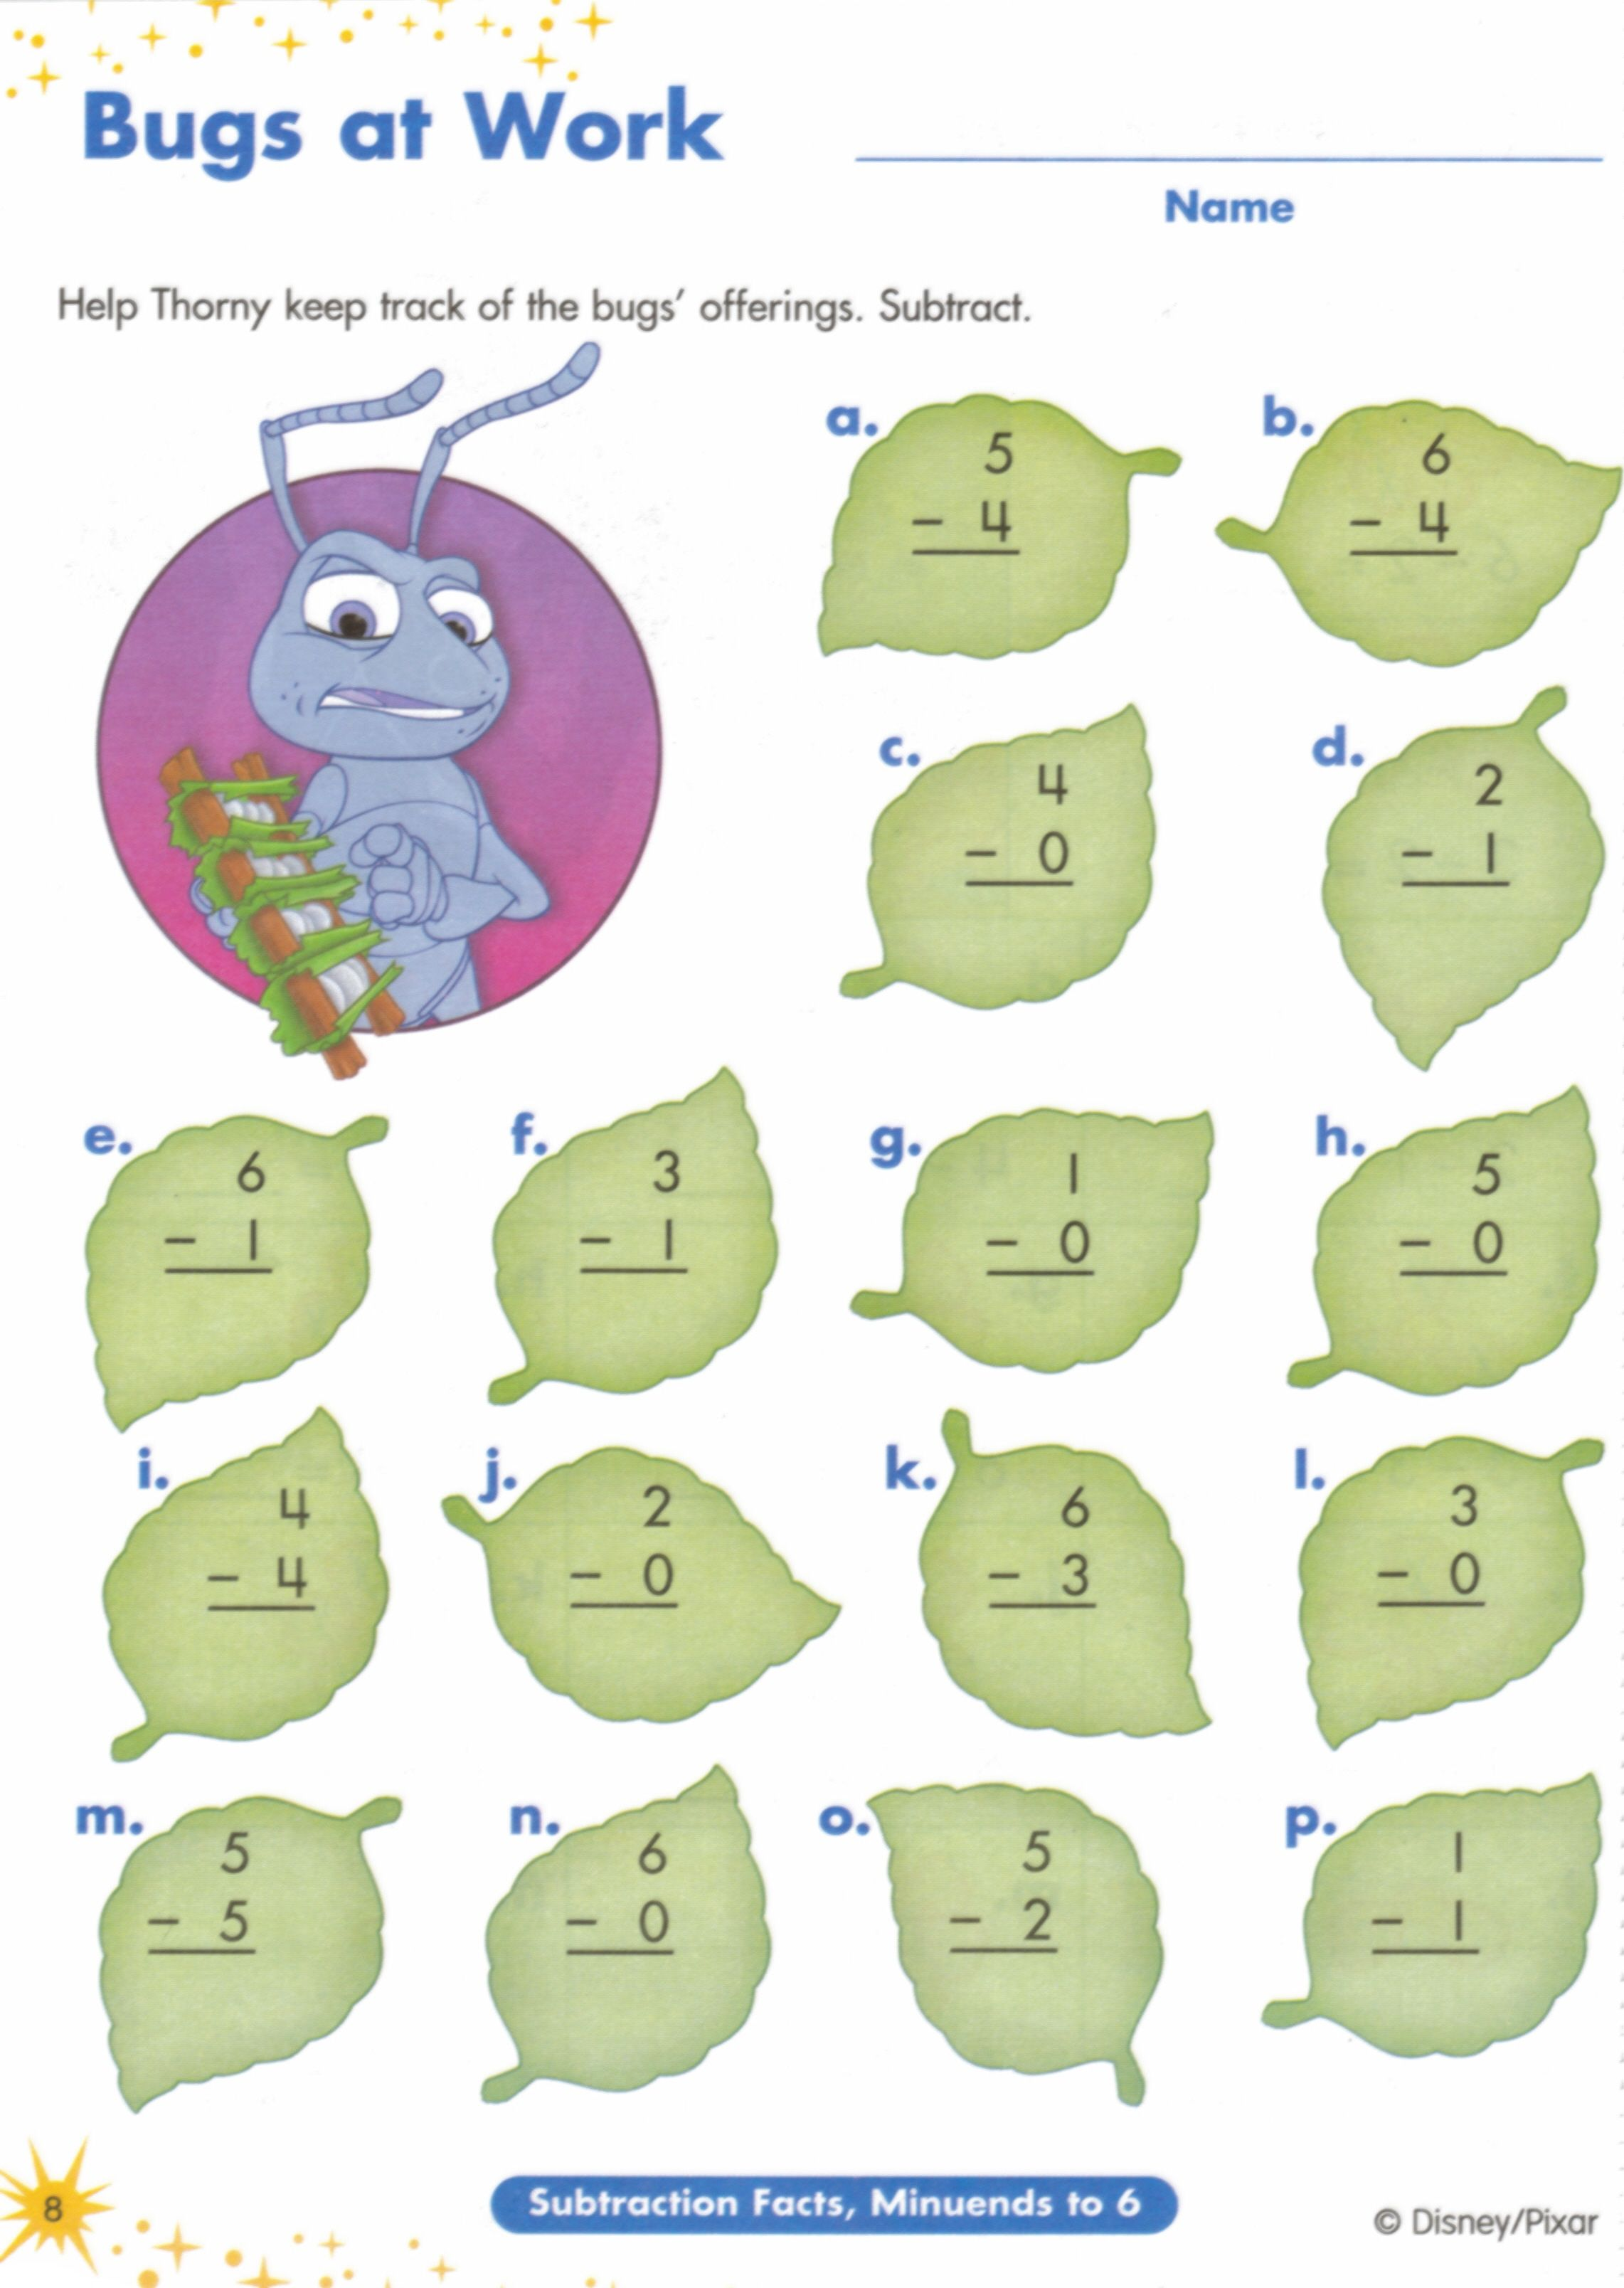 Proatmealus  Terrific  Images About Worksheets On Pinterest  Fun Facts For Kids  With Remarkable  Images About Worksheets On Pinterest  Fun Facts For Kids Earth Day Worksheets And Jungles With Comely Solving Equations And Inequalities Worksheets Also Nonfiction Text Structure Worksheet In Addition Poetry Analysis Worksheets And Eleanor Roosevelt Worksheets As Well As Multiplying And Dividing Fractions And Mixed Numbers Worksheets Additionally Solvent And Solute Worksheet From Pinterestcom With Proatmealus  Remarkable  Images About Worksheets On Pinterest  Fun Facts For Kids  With Comely  Images About Worksheets On Pinterest  Fun Facts For Kids Earth Day Worksheets And Jungles And Terrific Solving Equations And Inequalities Worksheets Also Nonfiction Text Structure Worksheet In Addition Poetry Analysis Worksheets From Pinterestcom